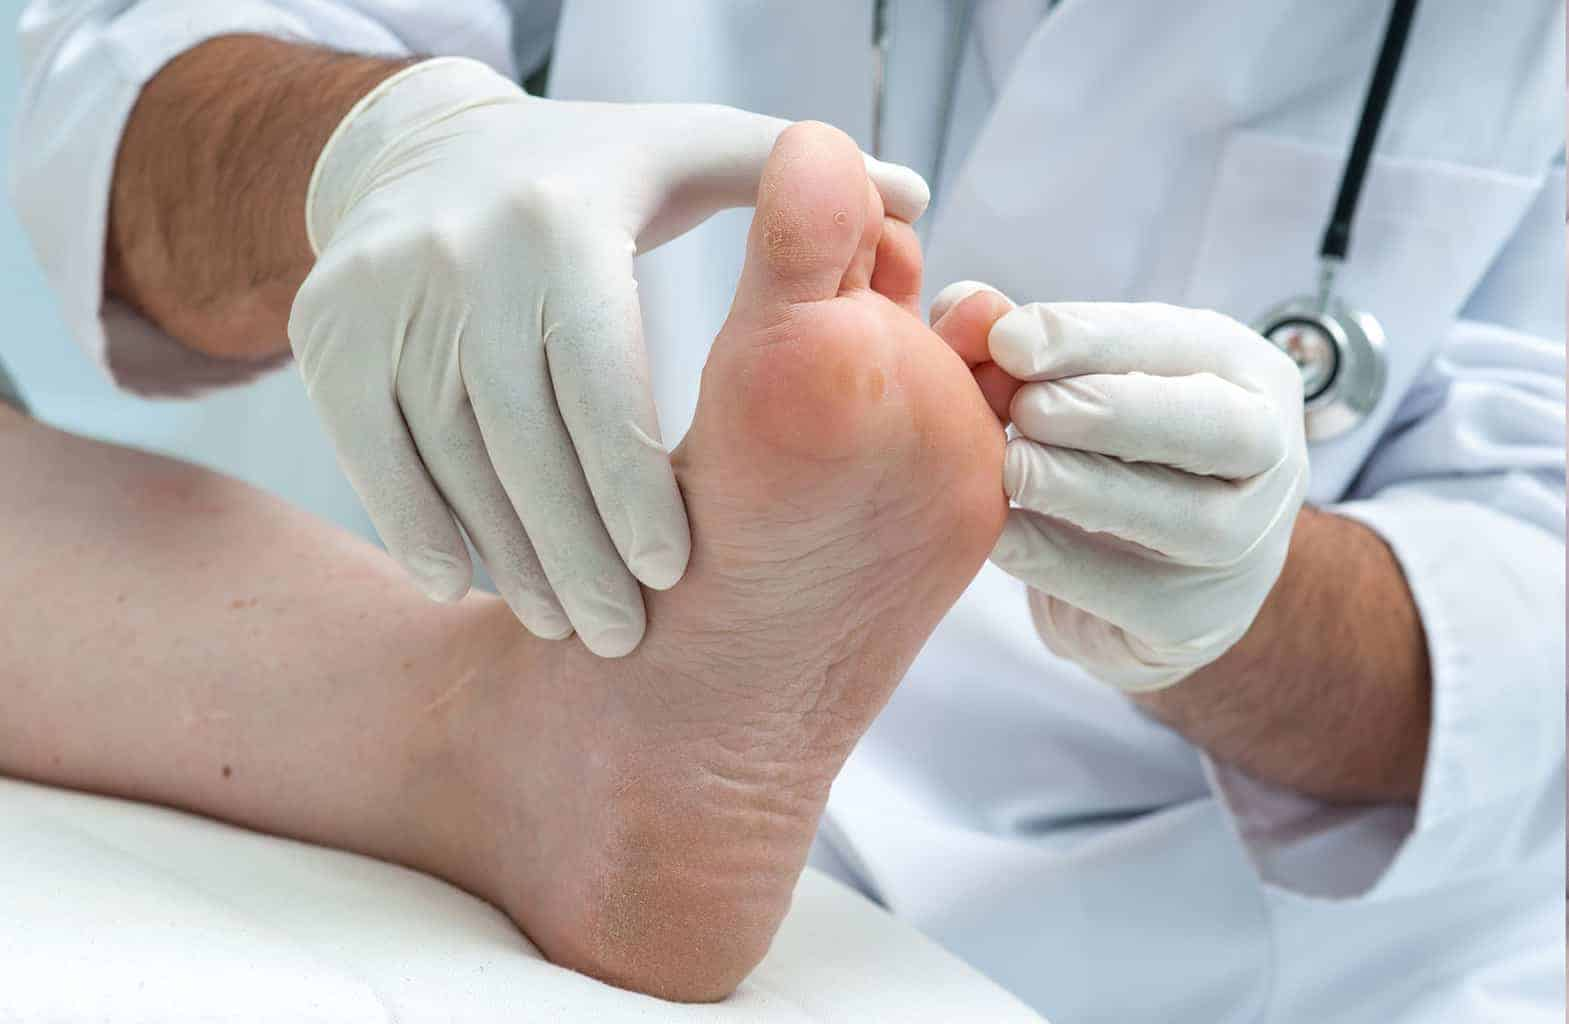 Treatment Options for Athlete's Foot